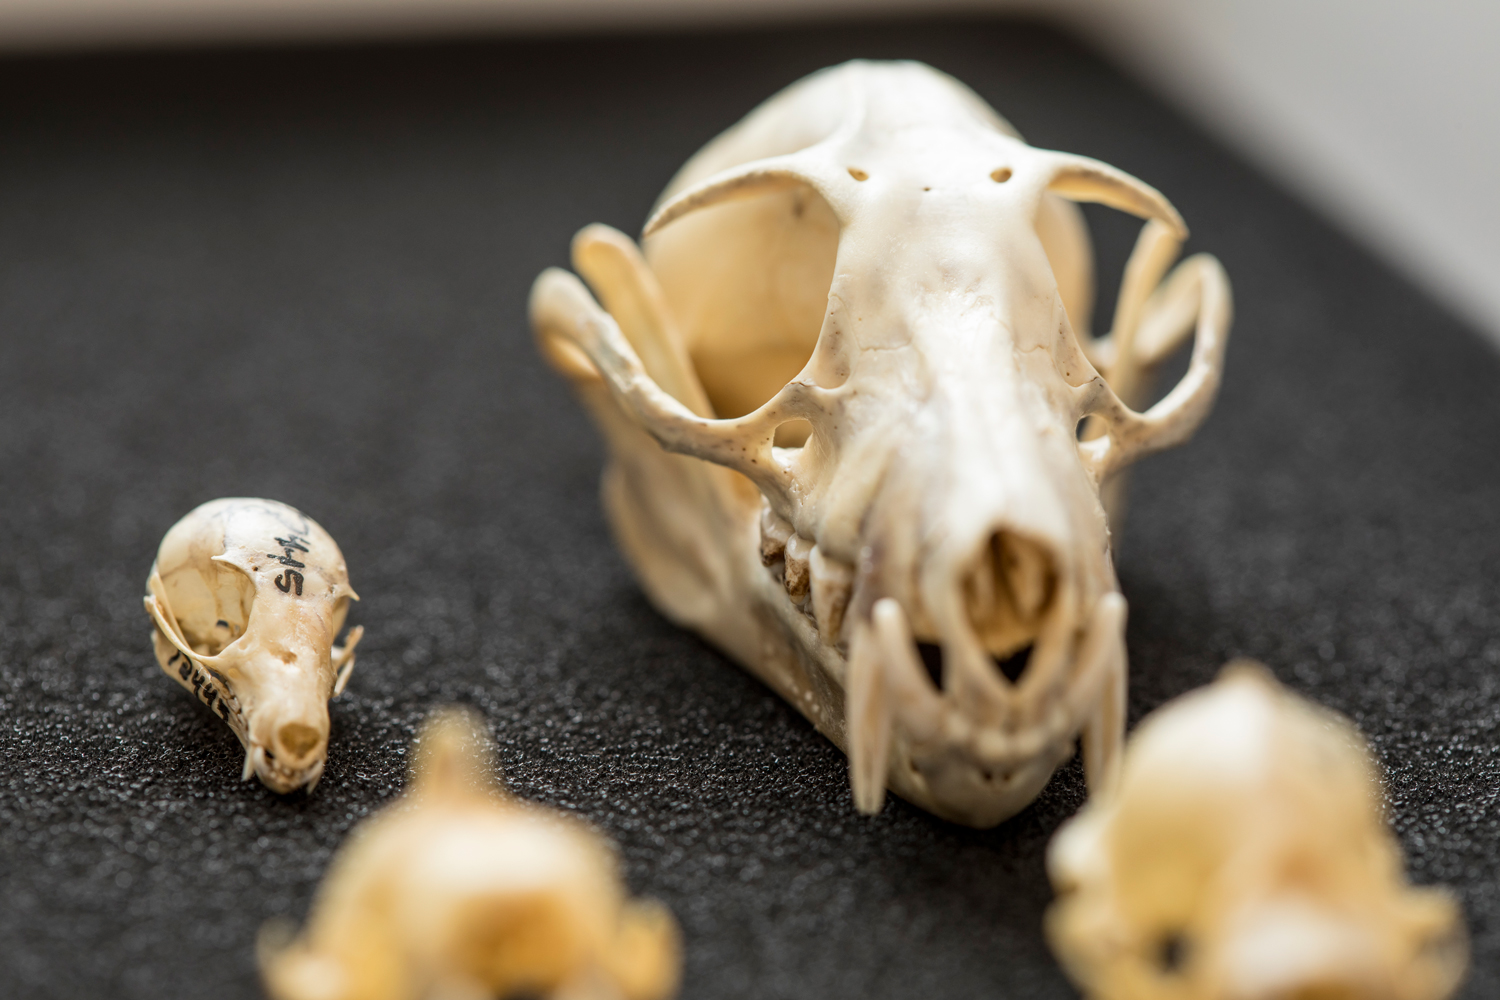 Bats evolved diverse skull shapes due to echolocation, diet